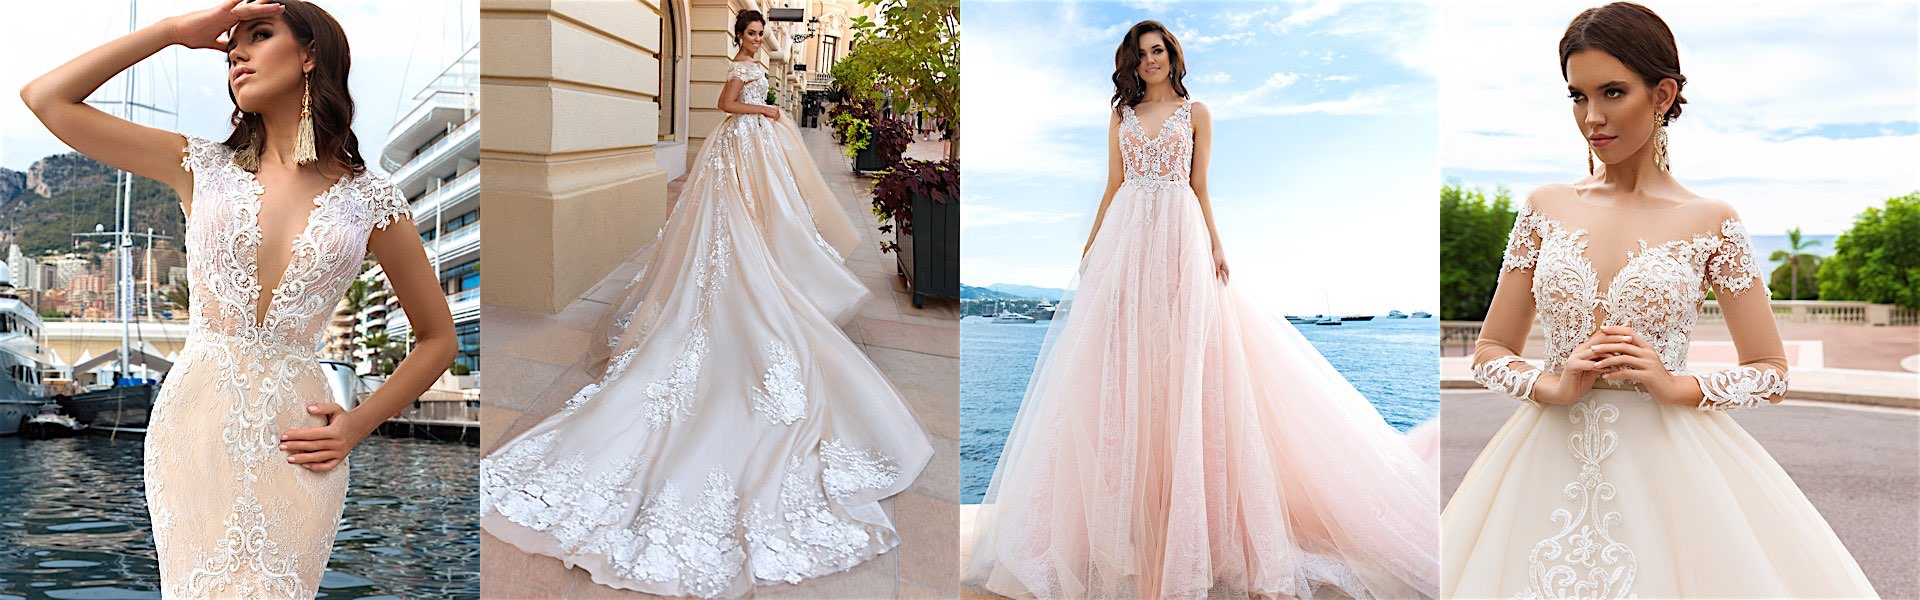 Mesmerizing 2017 crystal design wedding dresses modwedding mesmerizing 2017 crystal design wedding dresses junglespirit Image collections